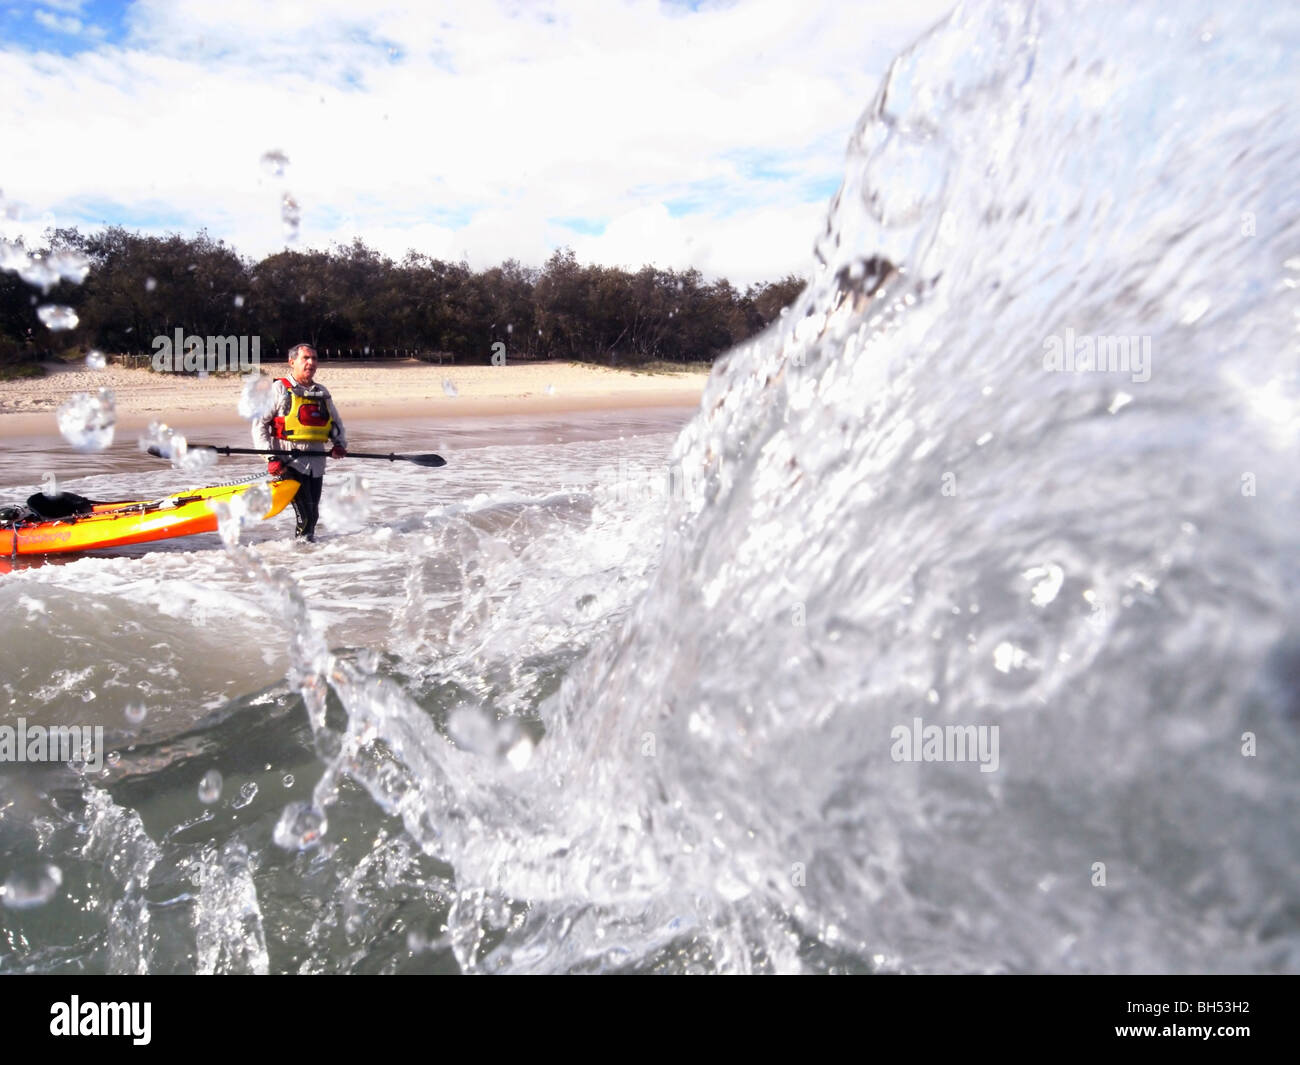 Sea kayaker entering heavy surf from beach, Noosa, Sunshine Coast, Queensland, Australia. MR Stock Photo